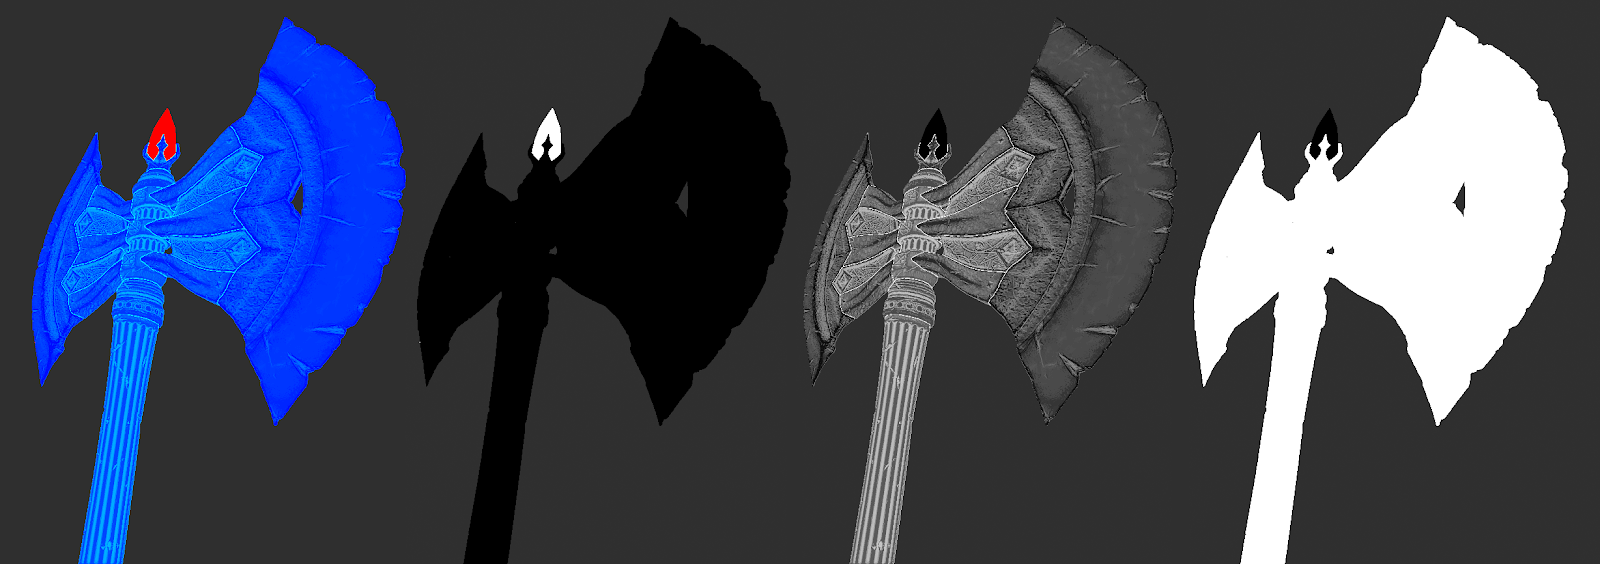 Axe-Maps-2.png